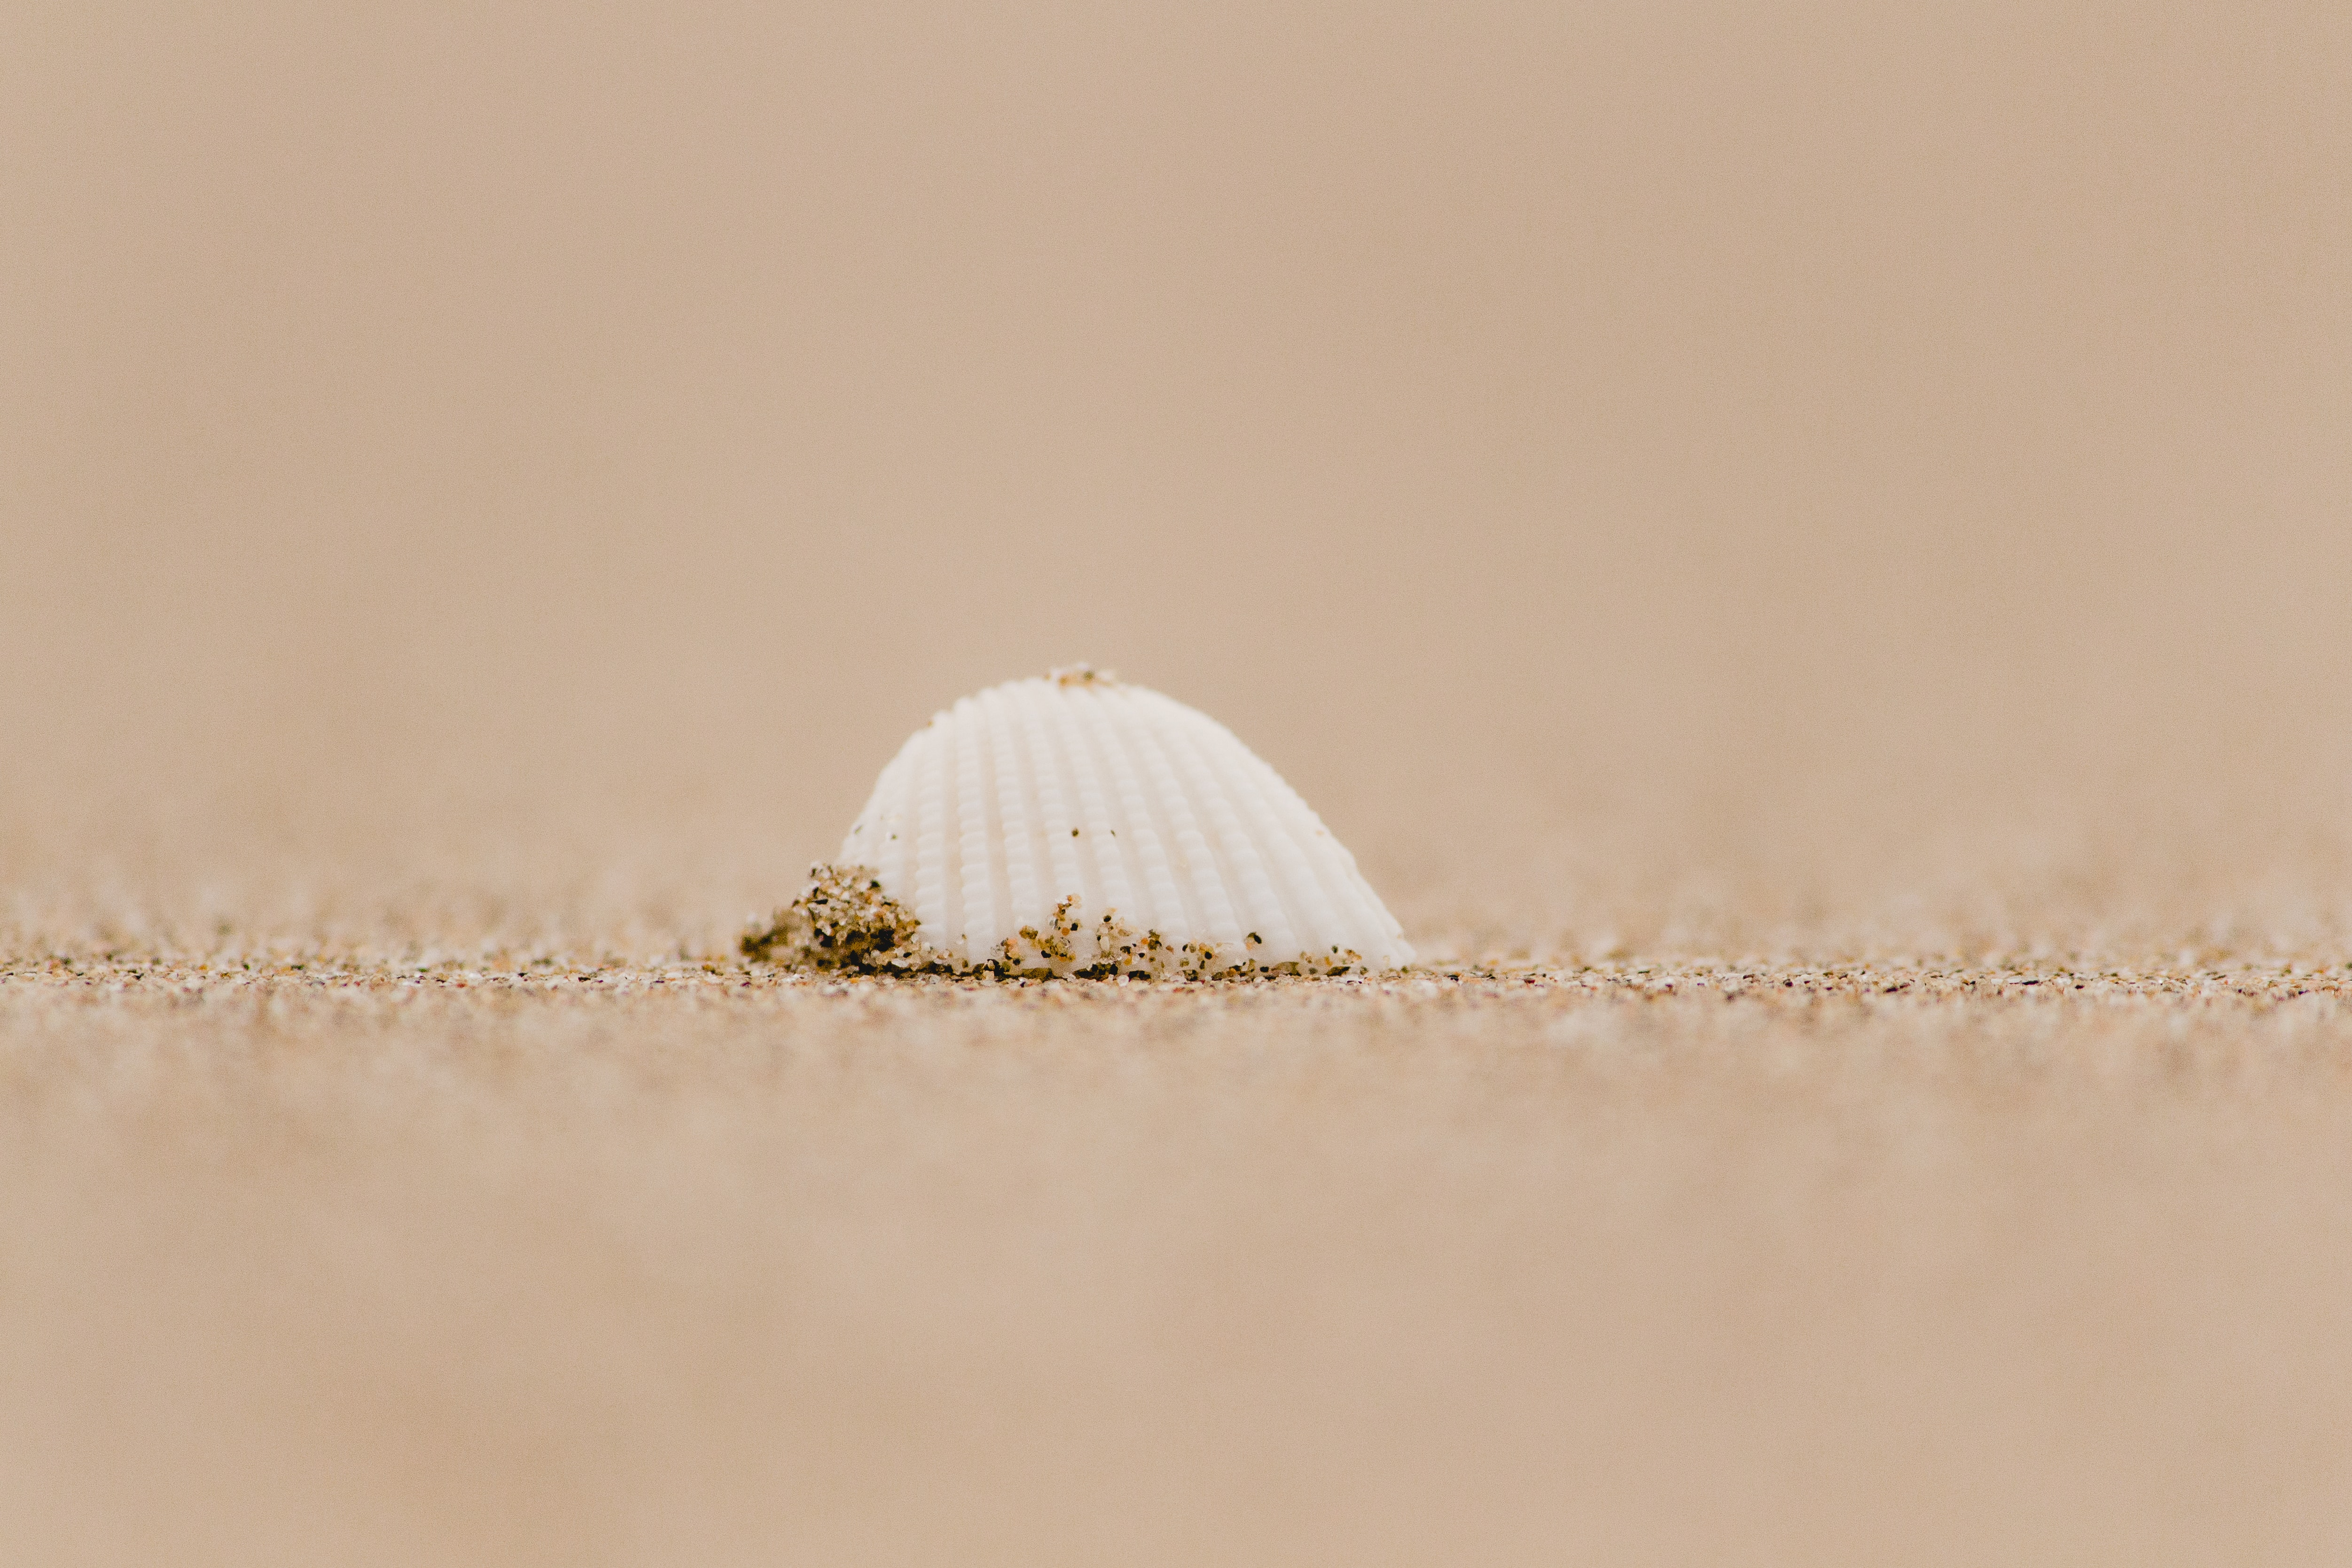 white seashell on seashore